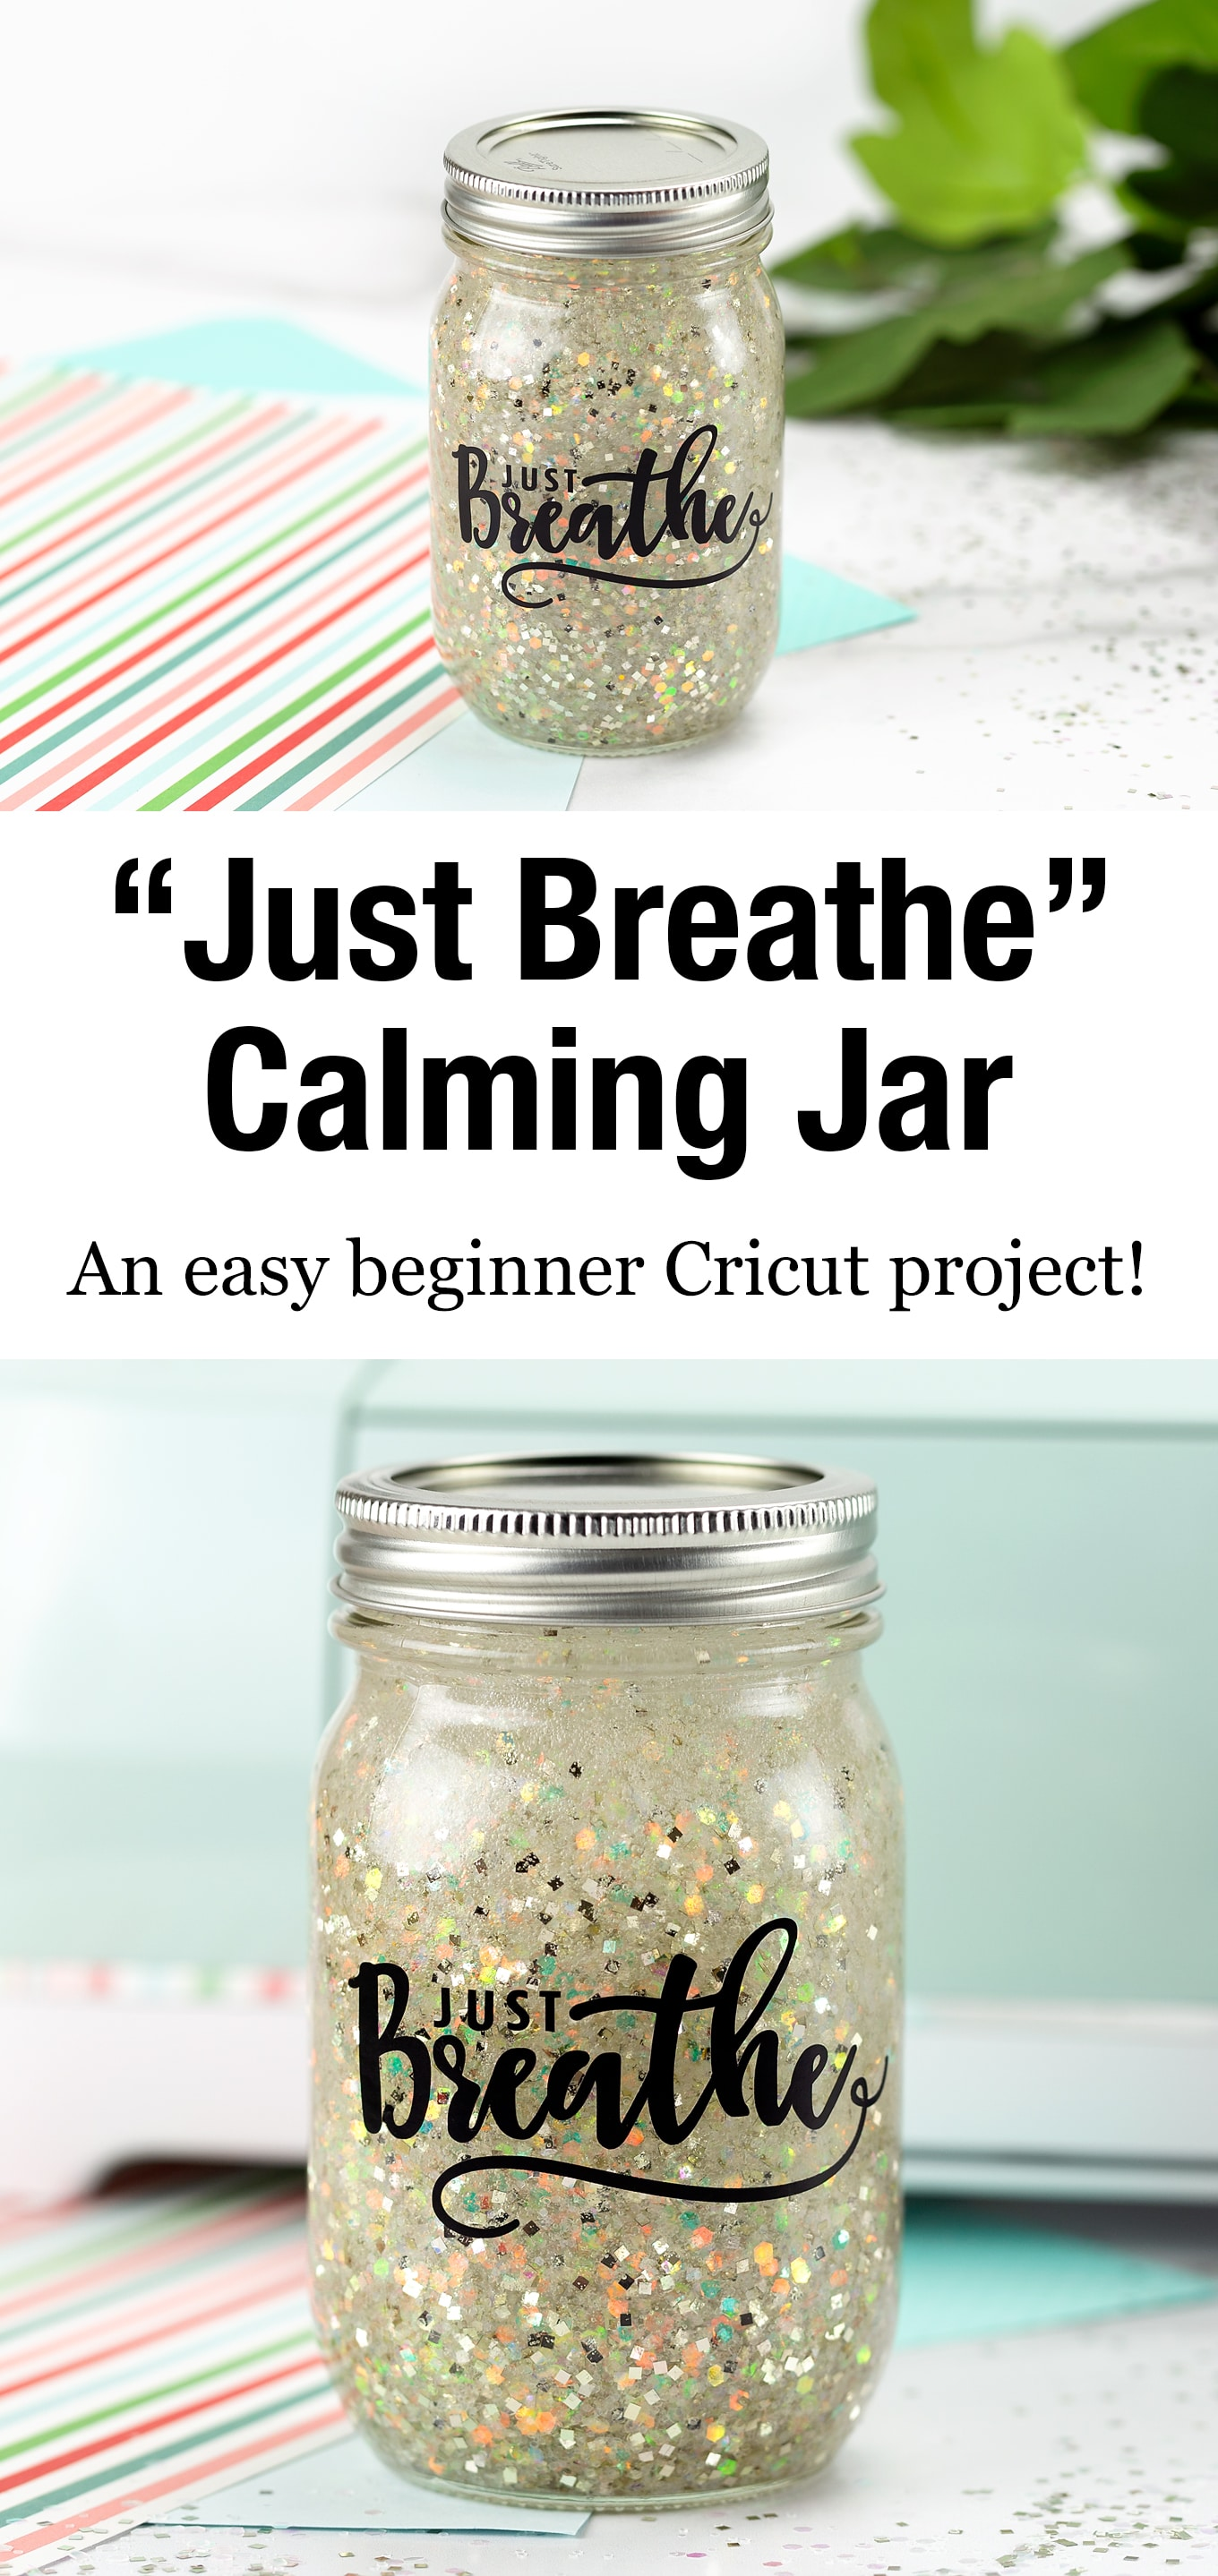 Learn how to make a DIY Calming Jar to help kids and adults work through strong emotions such as anger, sadness, or anxiety. #calmingjar #calmdownjar #glitterjar #cricutprojectsbeginner #cricutvinylcrafts #cricutprojects via @firefliesandmudpies